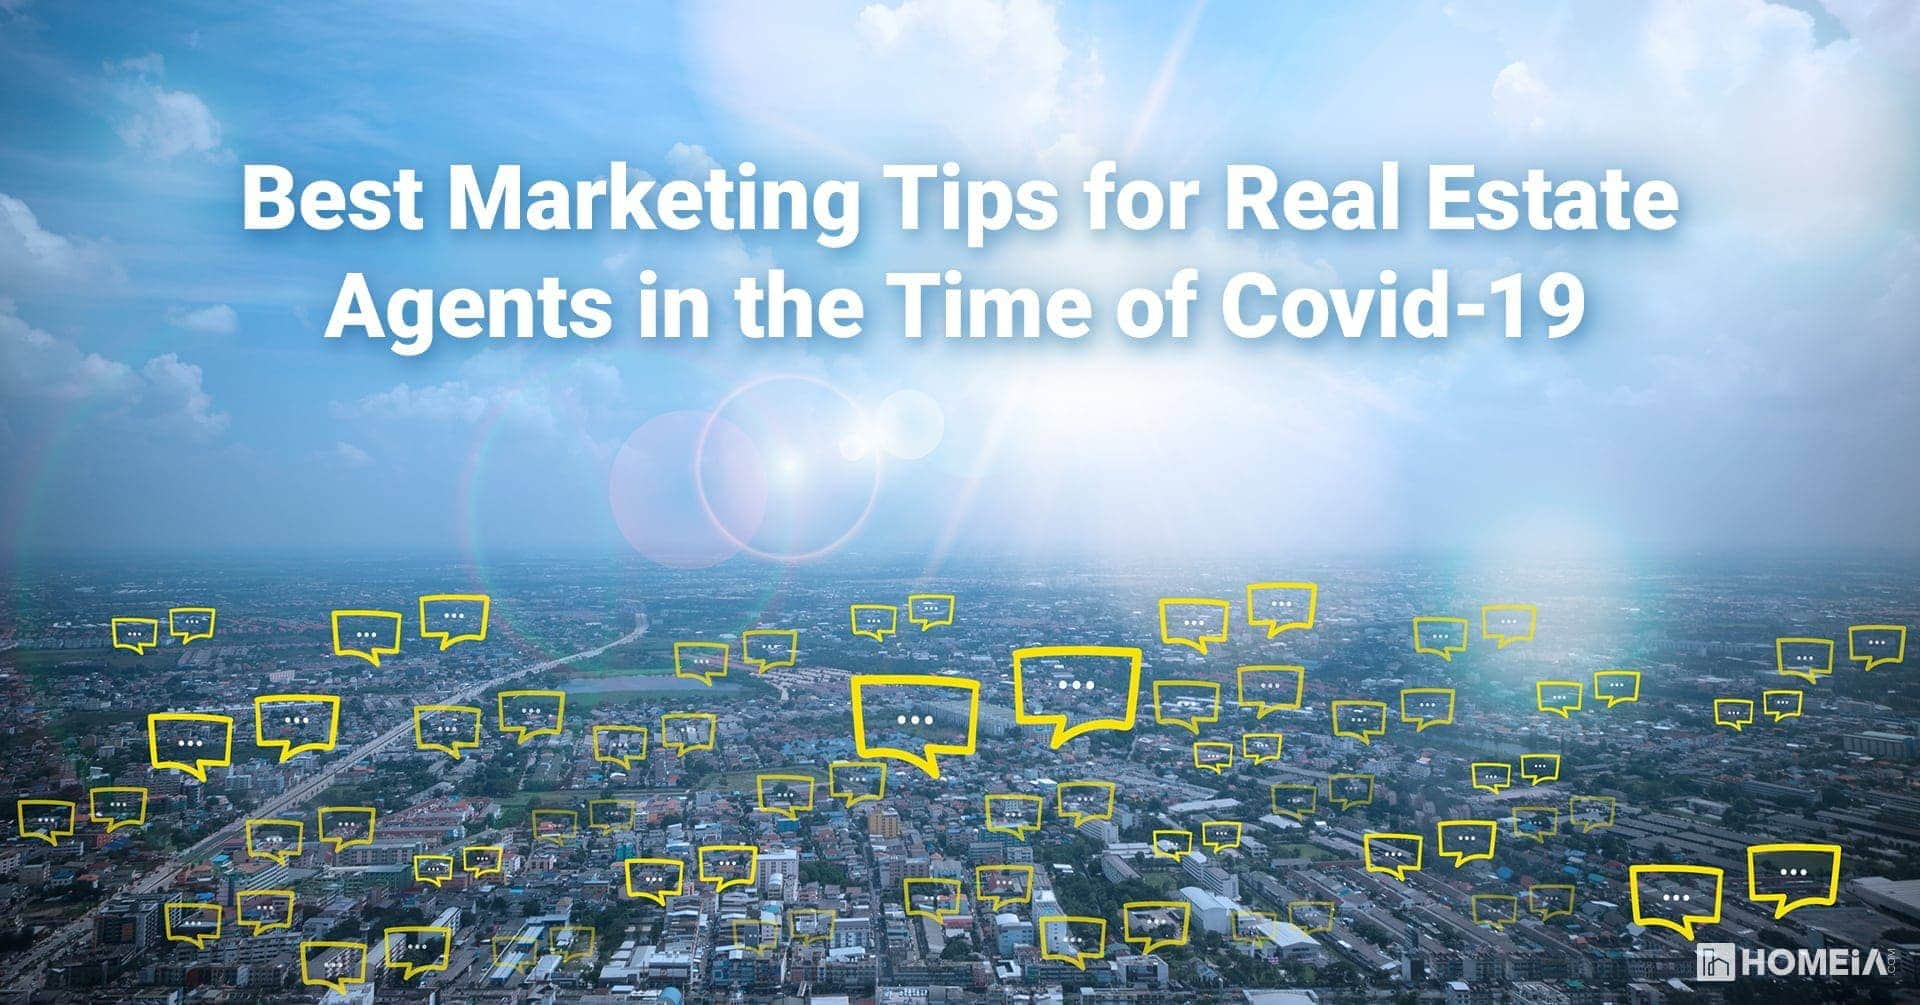 Best Marketing Tips for Real Estate Agents in the Time of Covid-19